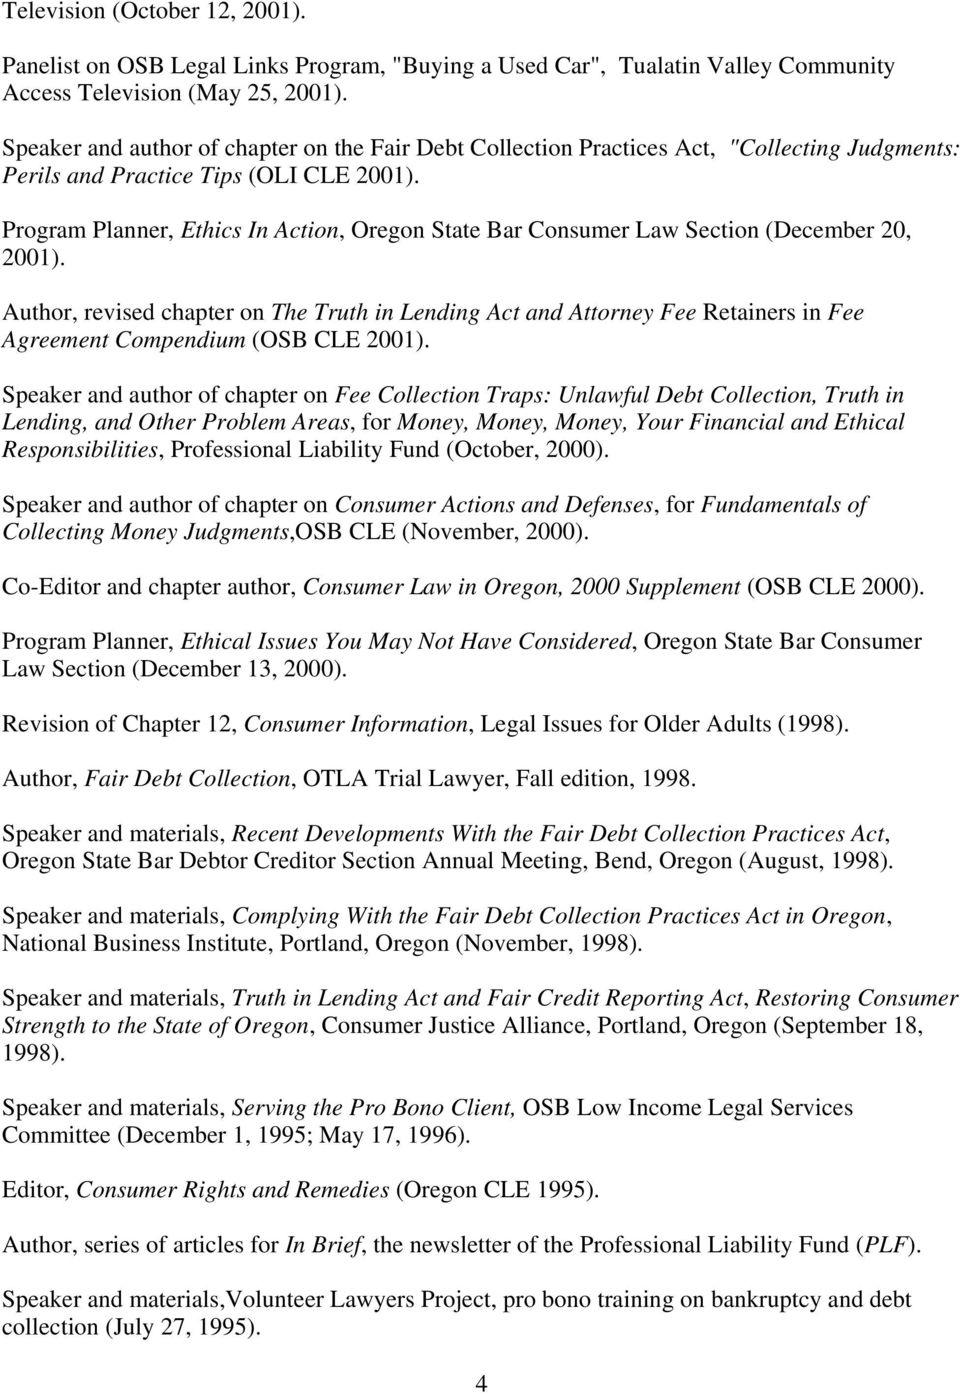 Program Planner, Ethics In Action, Oregon State Bar Consumer Law Section (December 20, 2001).